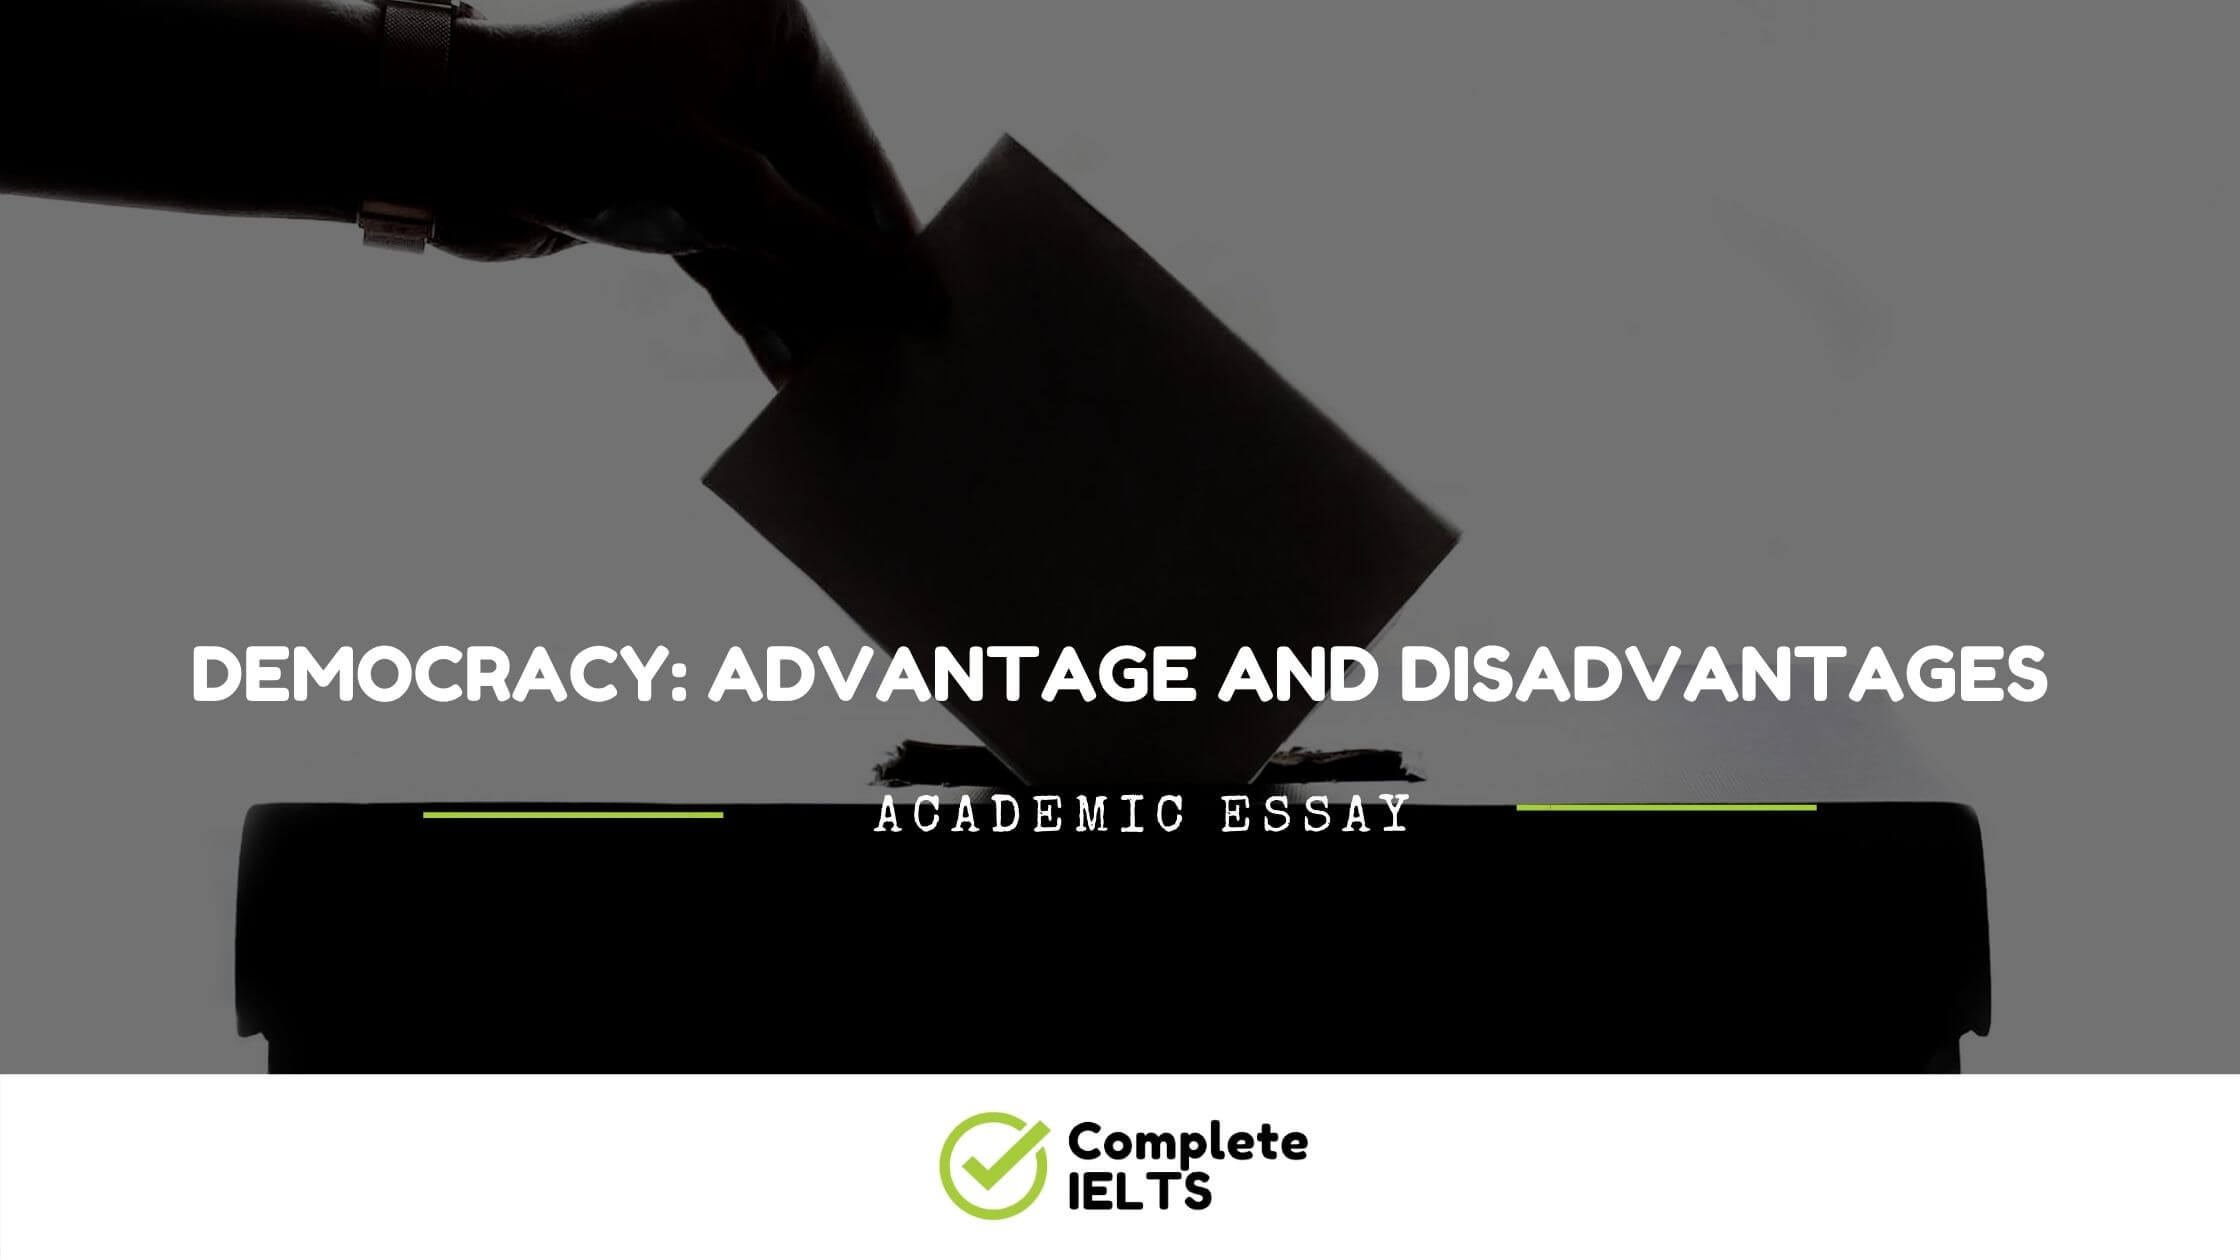 Essay on Democracy: Advantage And Disadvantages